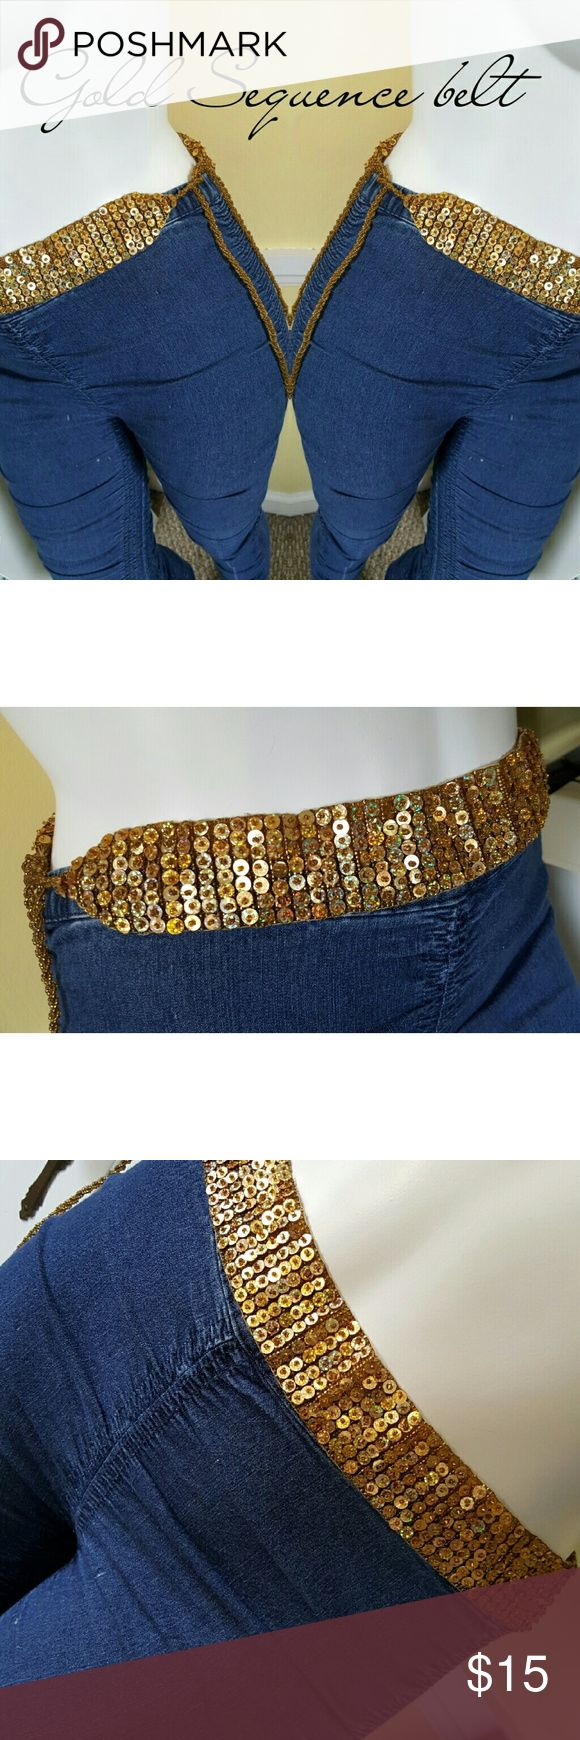 Vintage gold sequence tie belt. Vintage gold sequence tie belt. One size fits most. Very good condition.This belt is so pretty! Accessories Belts